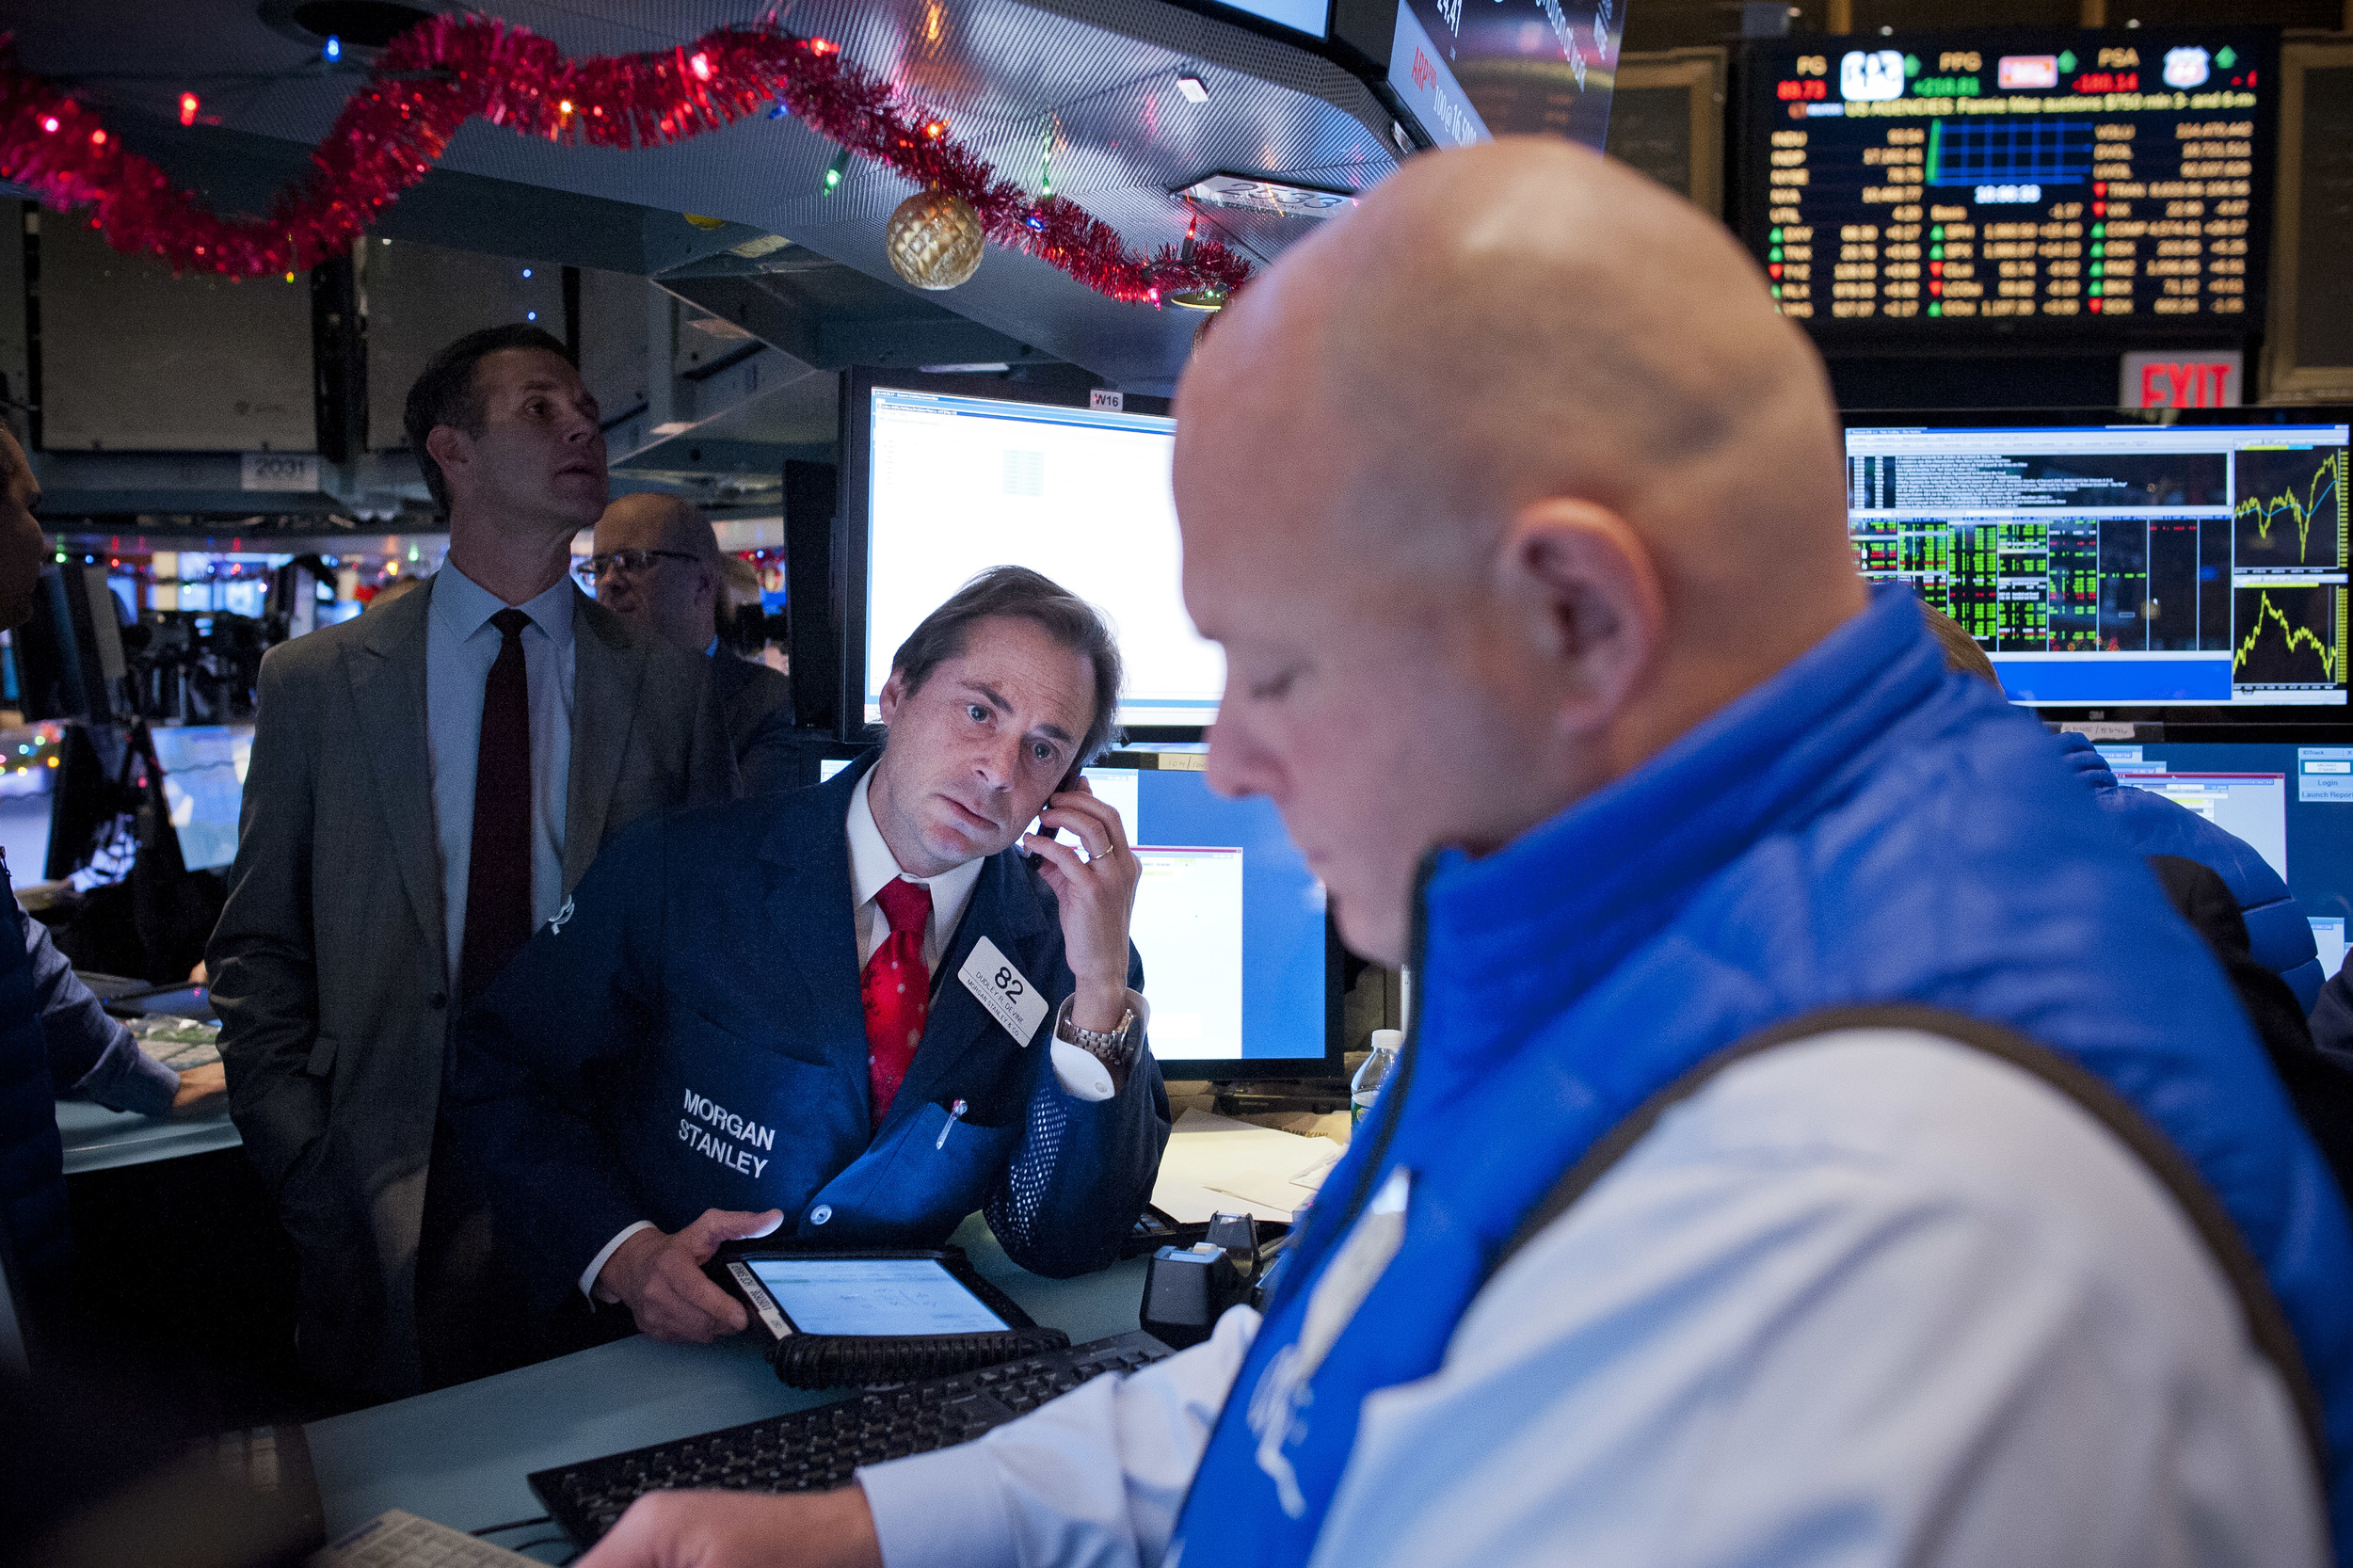 A holiday themed IPO.